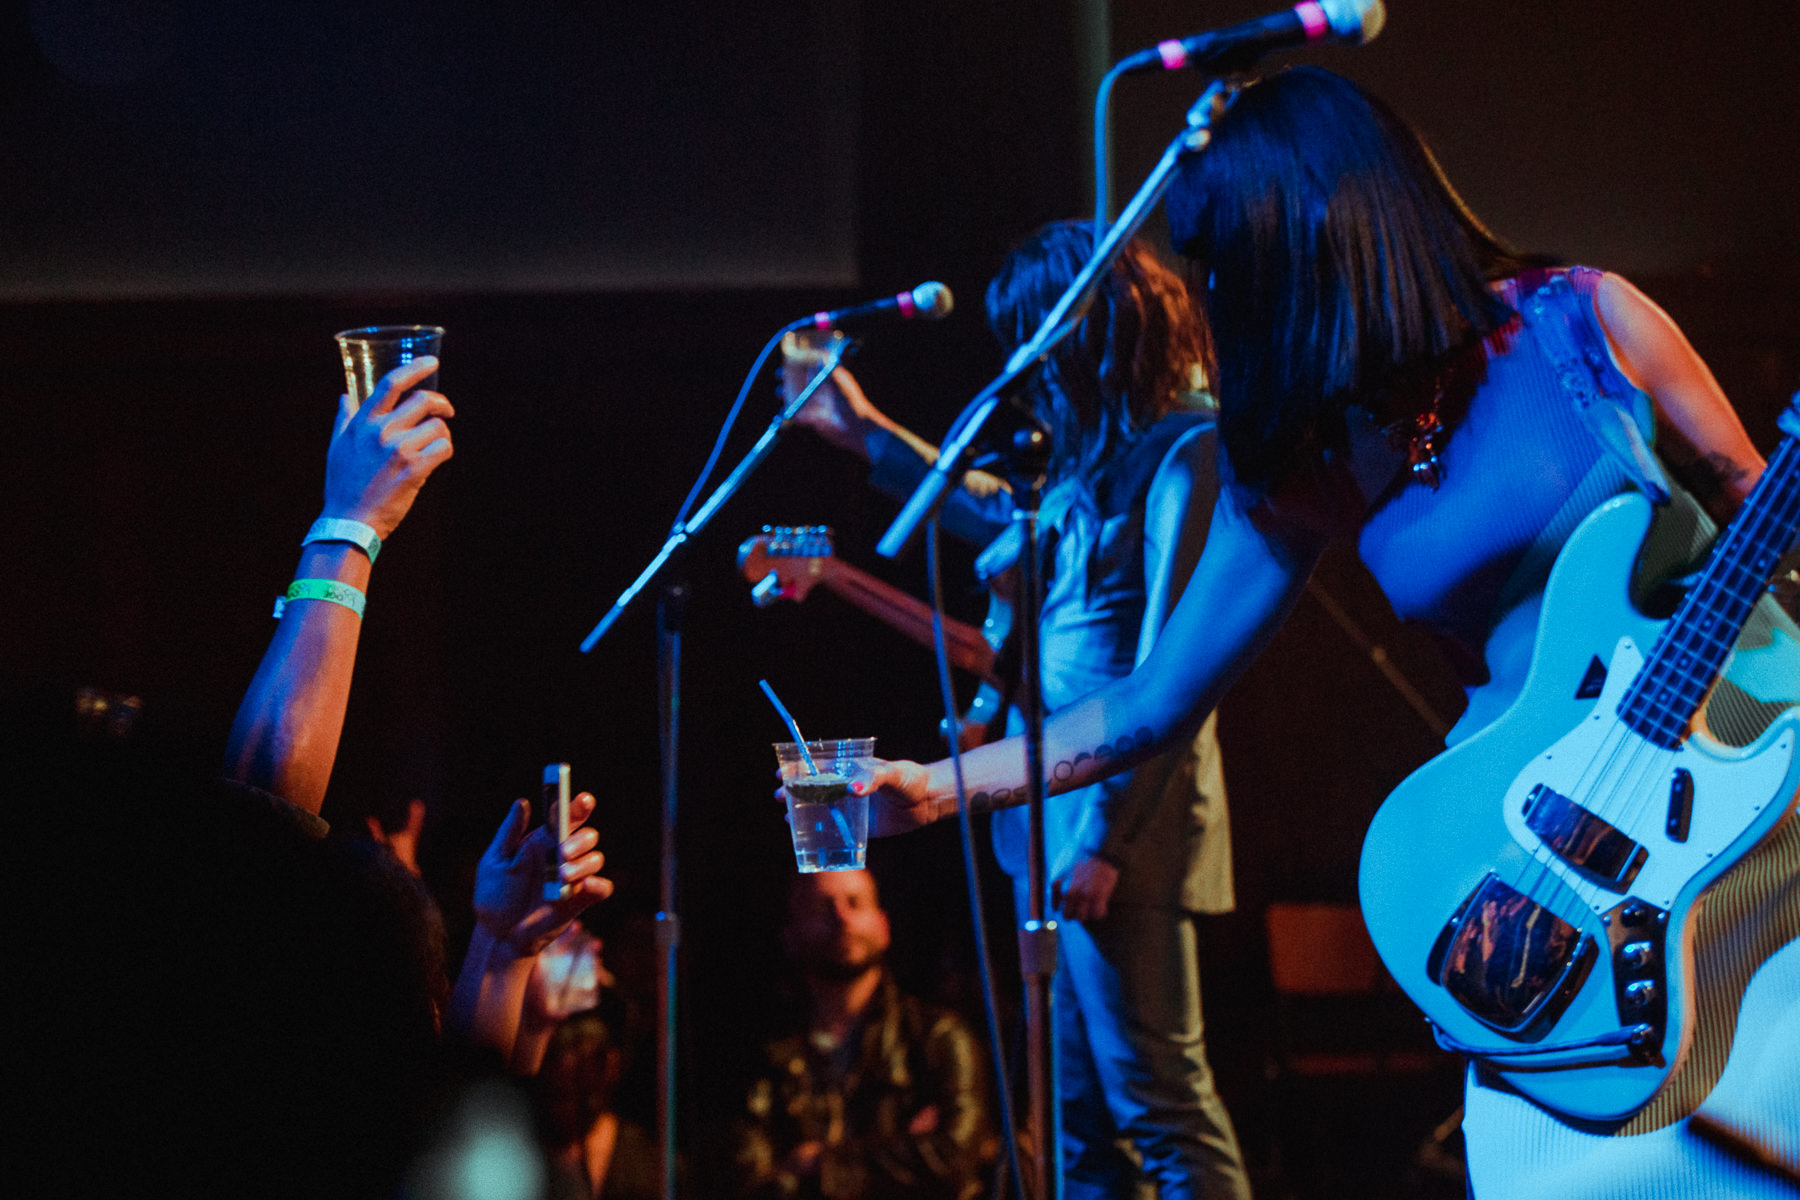 180326-kirby-gladstein-photograpy-khruangbin-concert-lodge-room-los-angeles-2695.jpg